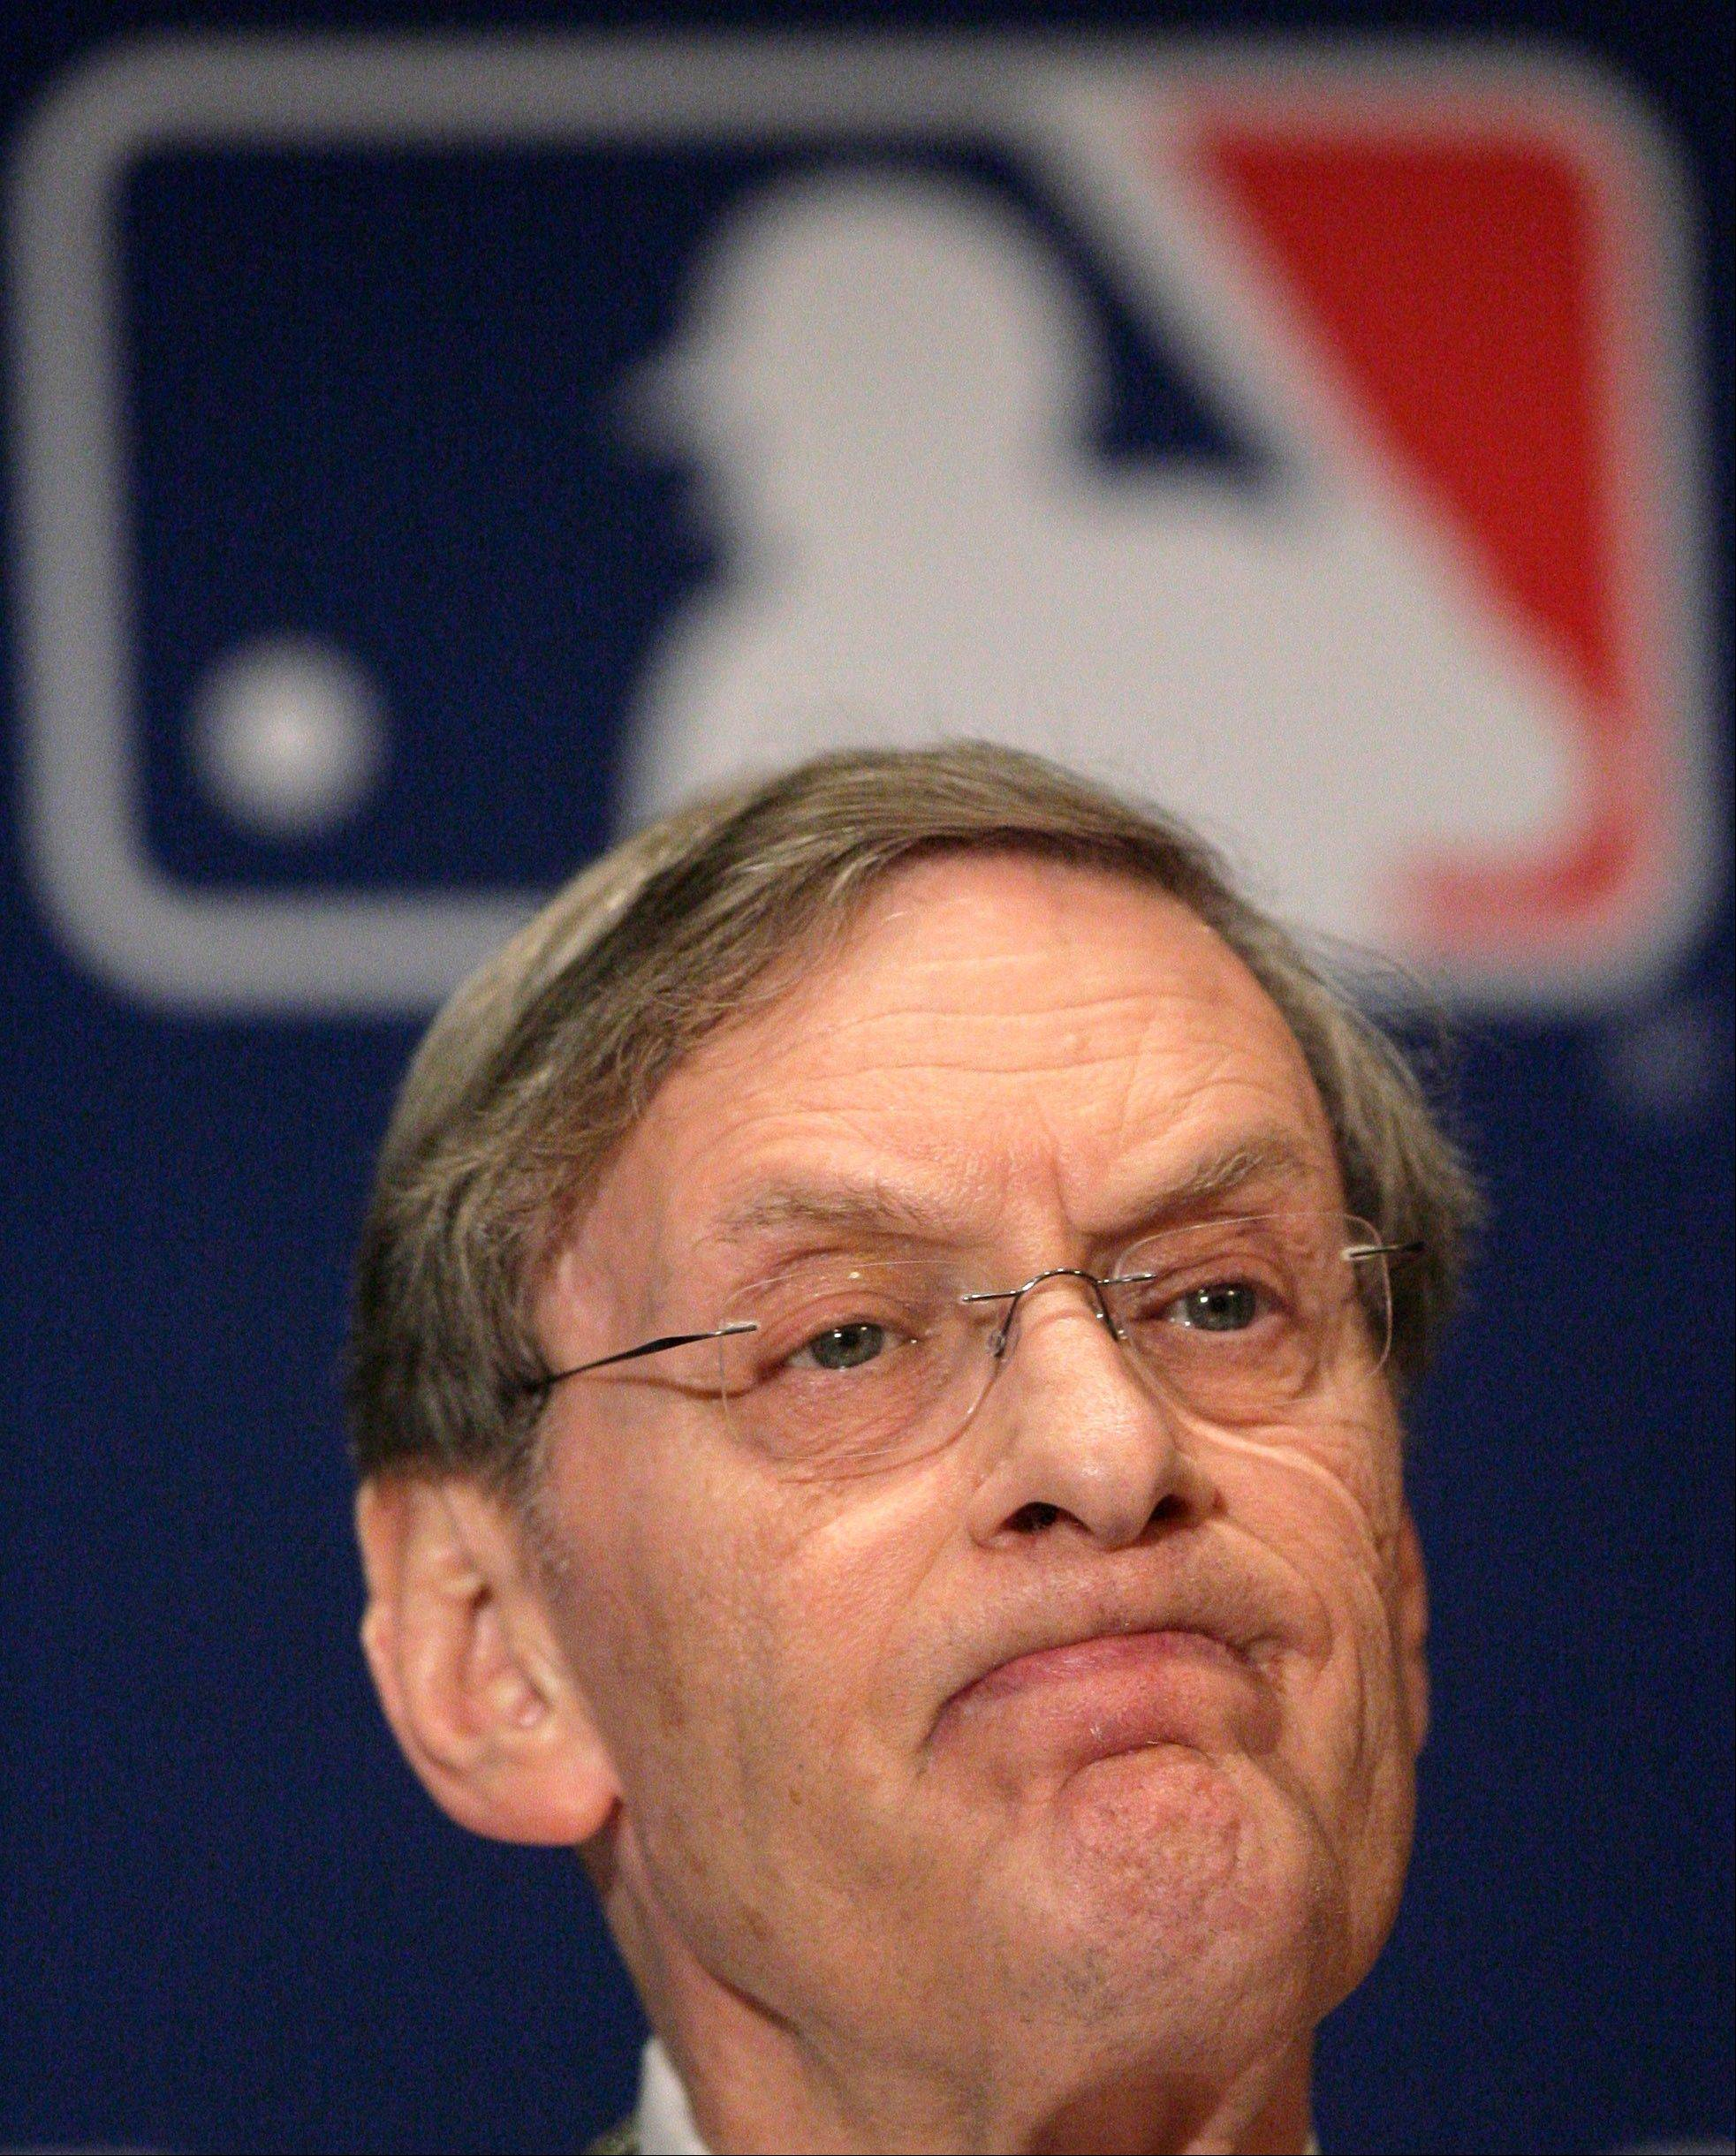 Baseball Commissioner Bud Selig, who will retire a year from now, seems to be doing all he can lately to help secure a spot in the Hall of Fame.